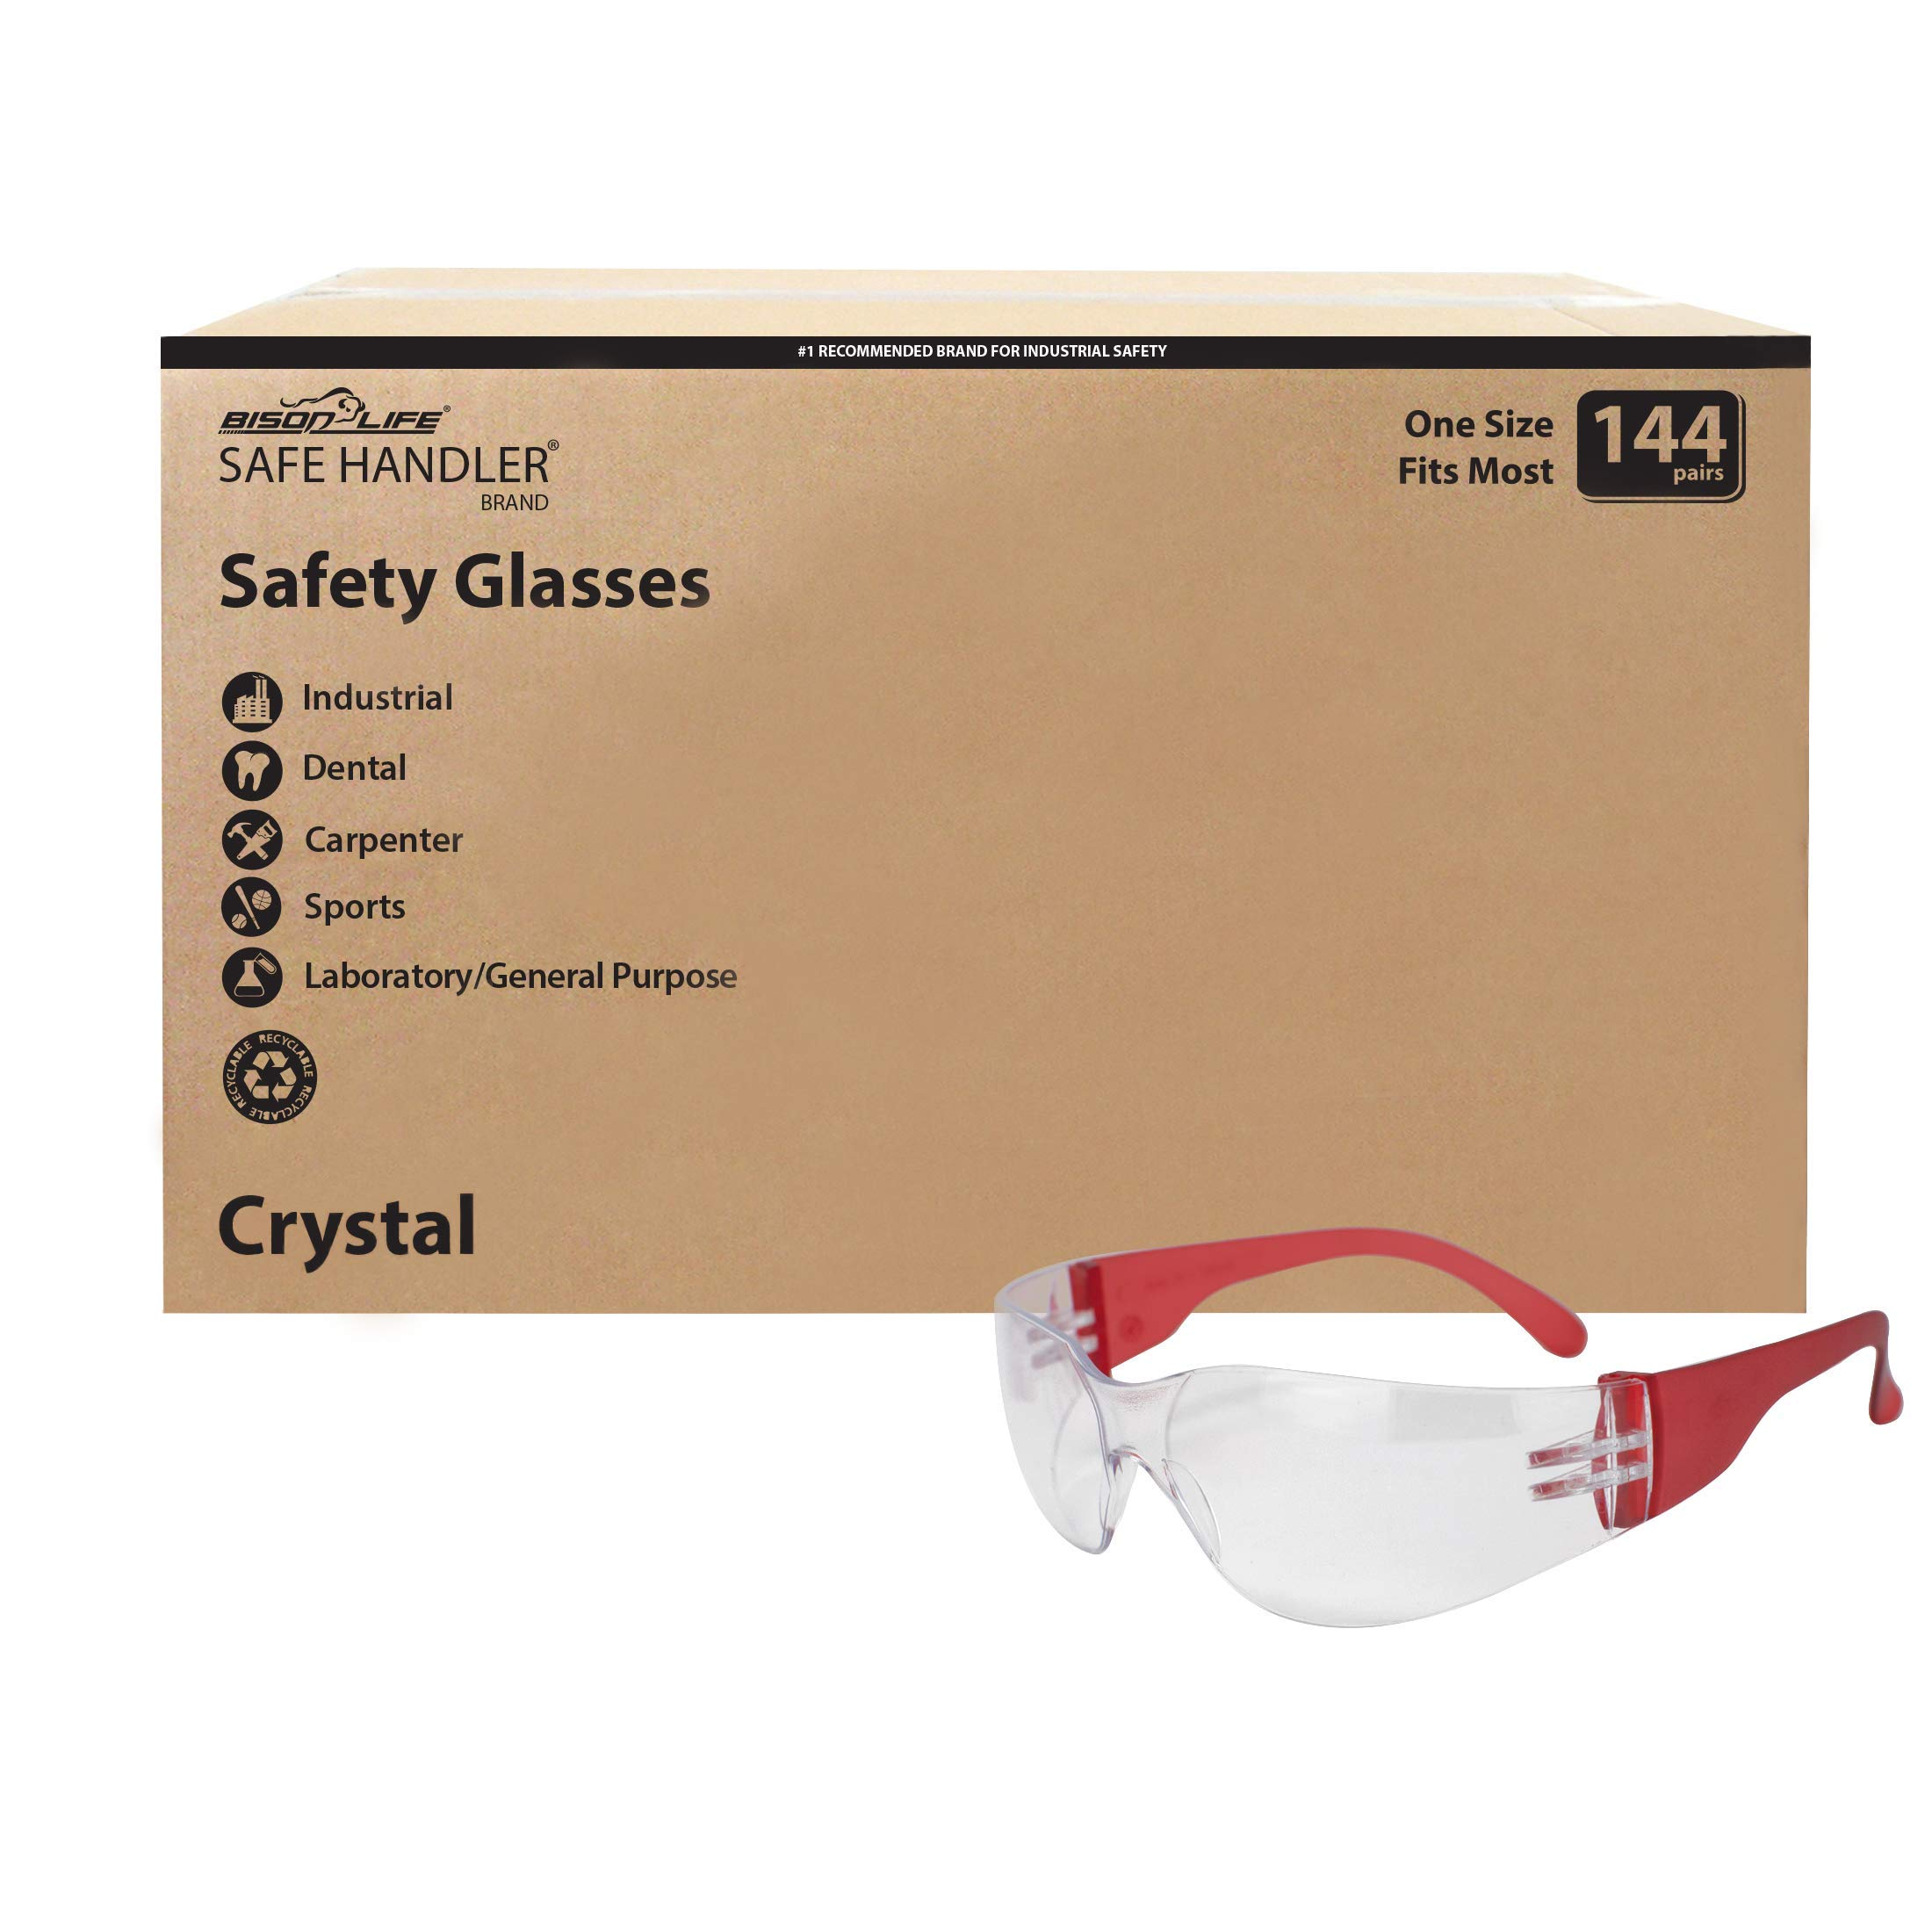 SAFE HANDLER Clear Lens Color Temple Safety Glasses   One Size, Adult, Youth, Clear Protective Polycarbonate Lens Color Temple, RED (Case of 12 Boxes, 144 Pairs Total)